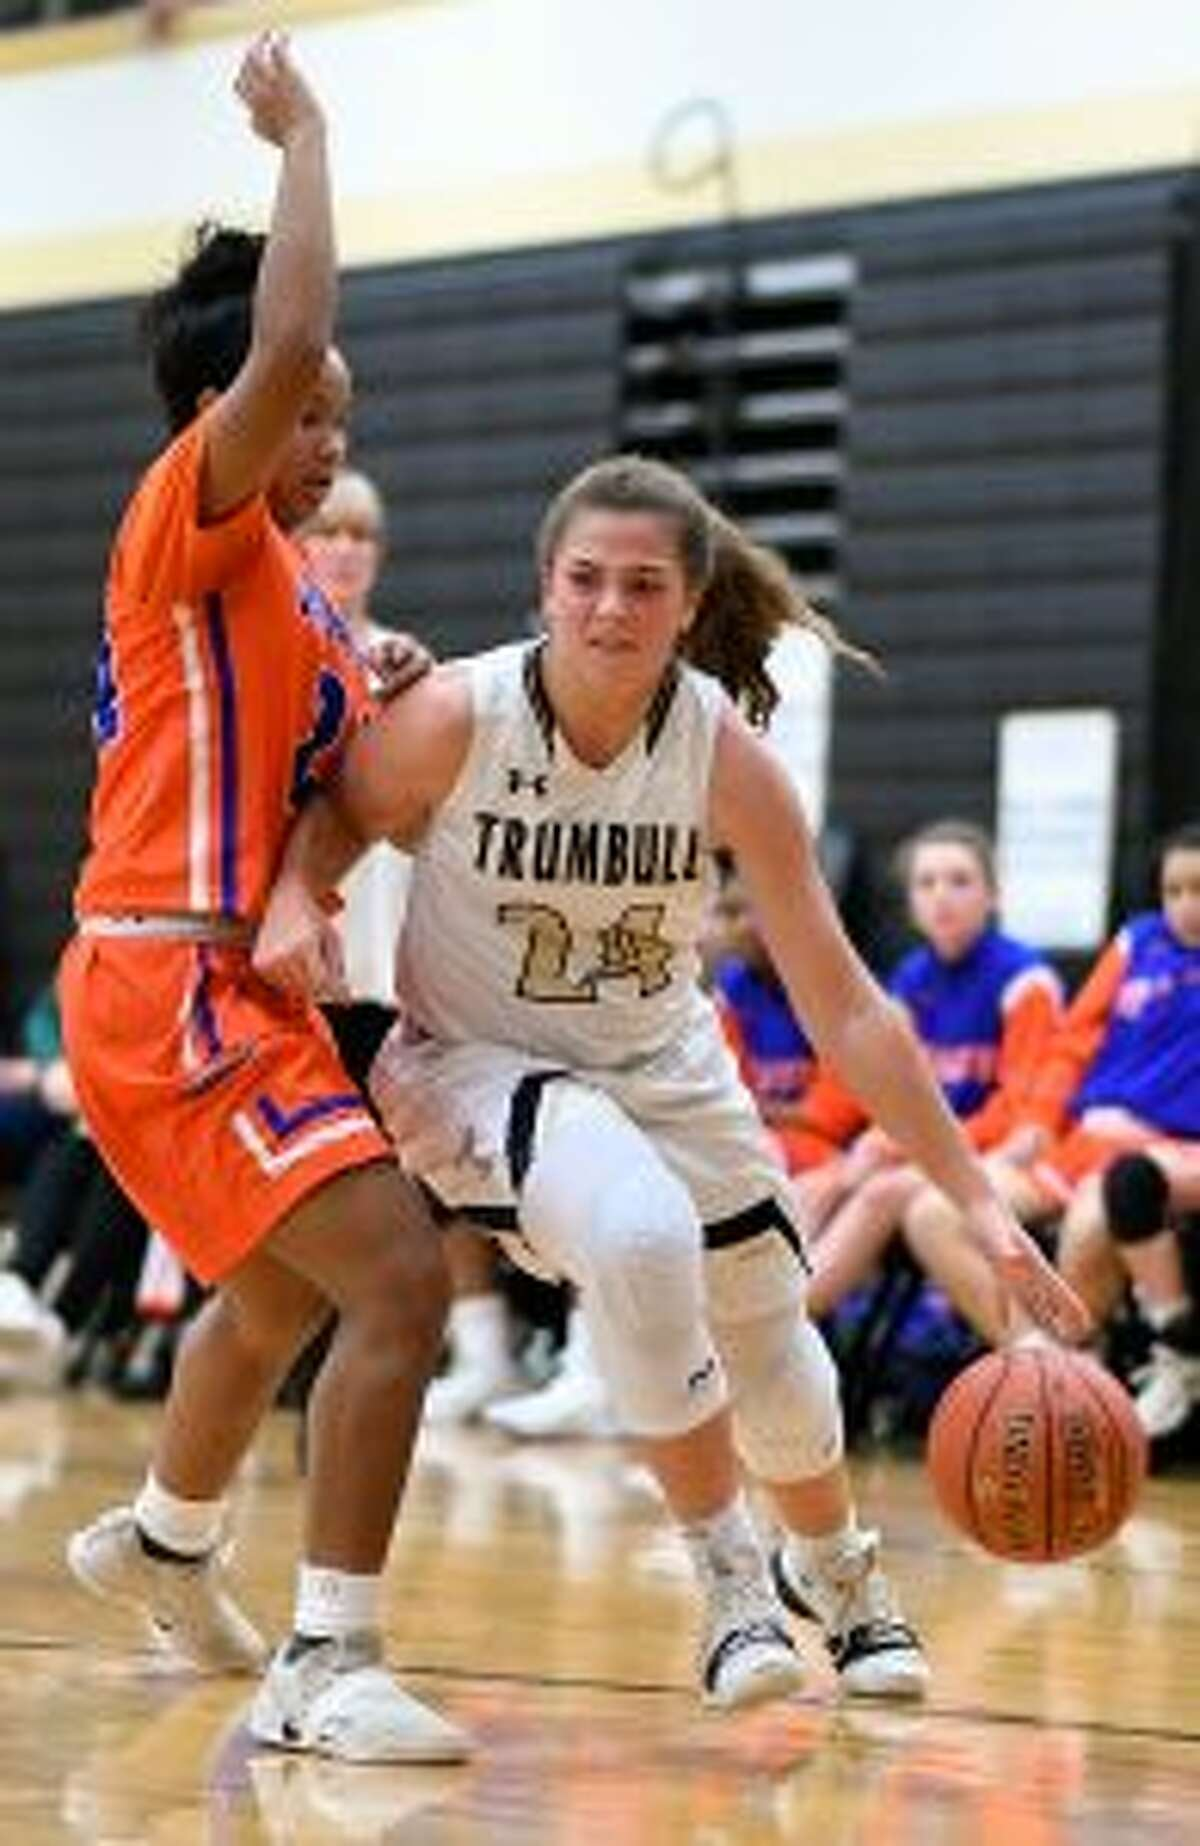 Cassi Barbato scored 16 points and was a mainstay on defense.